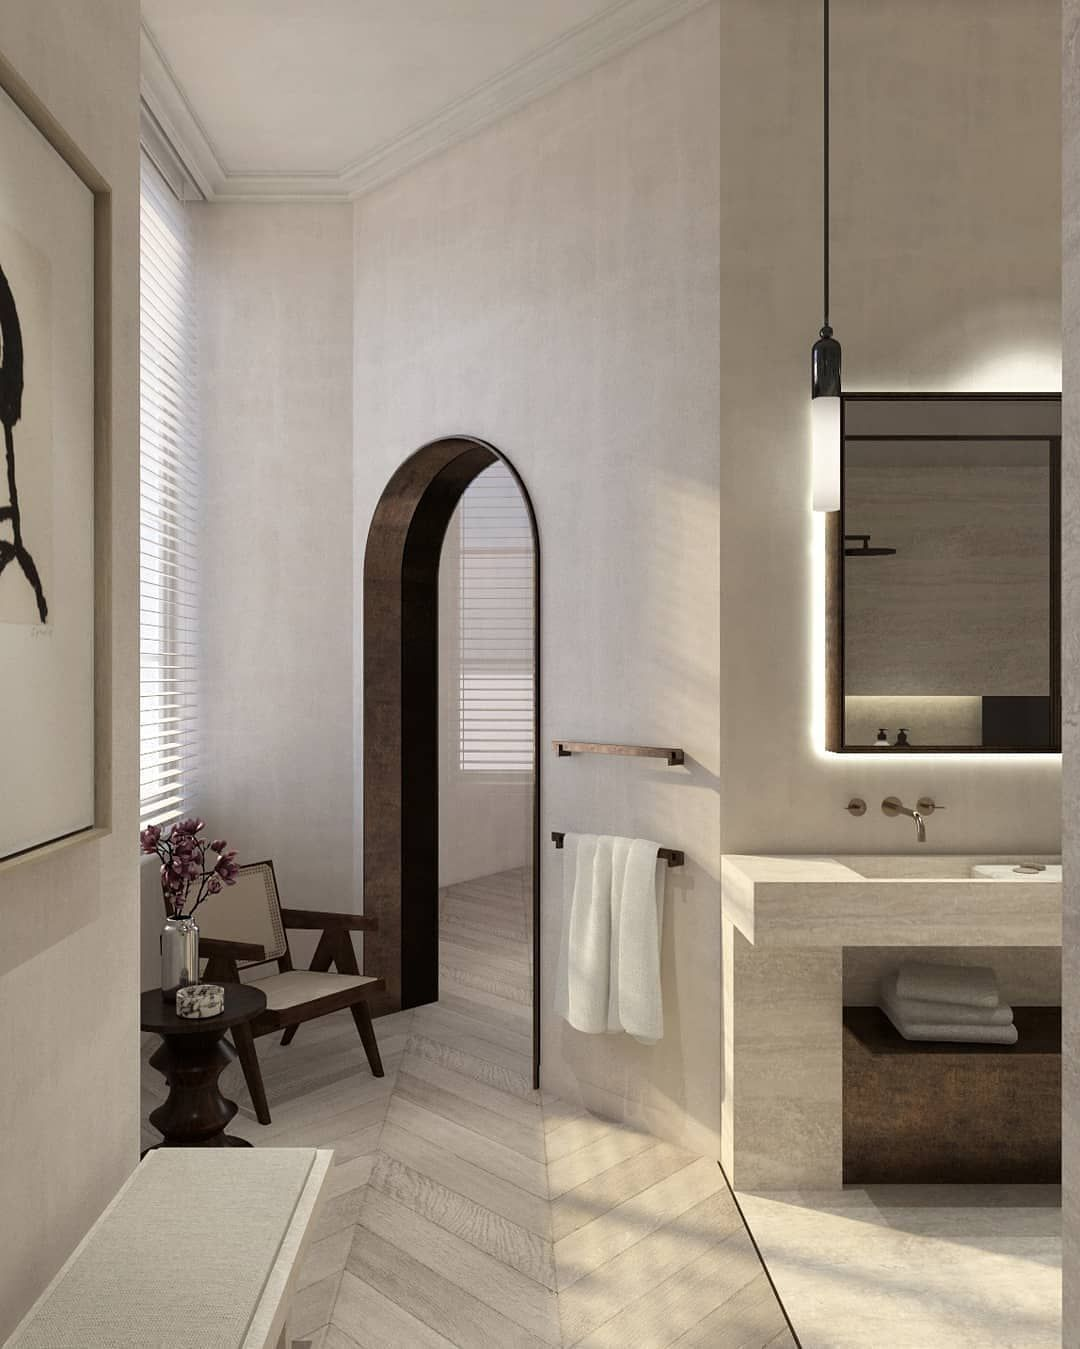 Courtney Interior Design On Instagram Doors And Floors Another Day Another Curved Doorway Jeanneret In 2020 Serene Bathroom Home Decor Styles Home Remodeling